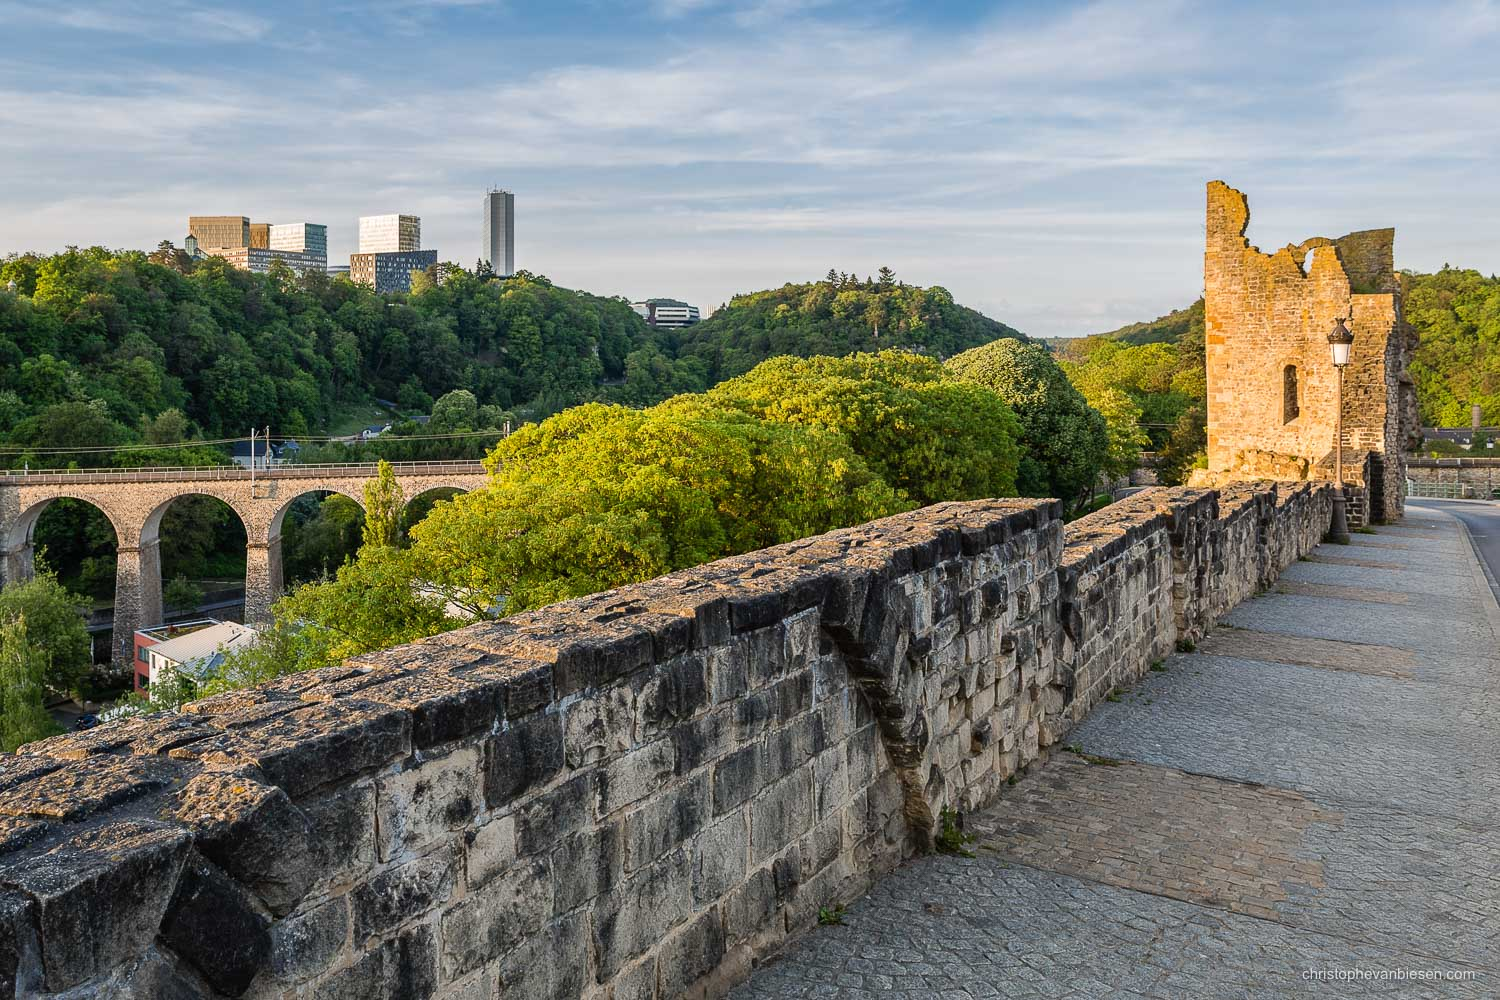 Summer in Luxembourg - Luxembourg's tower of the Hollow Tooth overlooks the Pfaffenthal, while the skyscrapers of the EU rise high on the Kirchberg plateau - The Old Guard